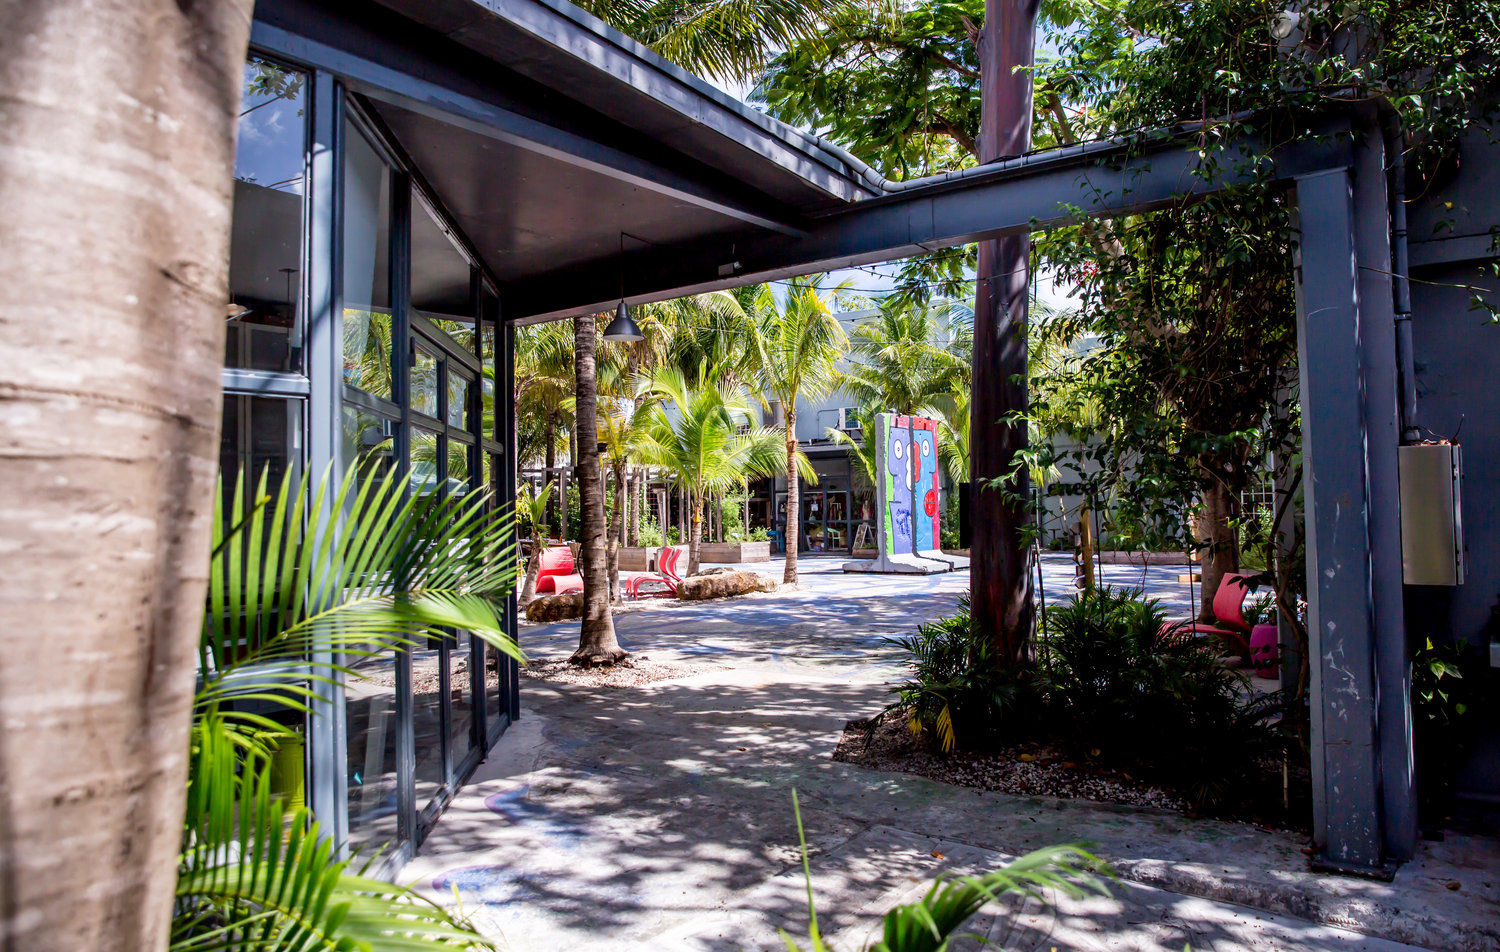 Miami Ironside - #MIamiIronside is a vibrant, mixed-use urban center developed with 60+ design showrooms, event spaces, pop up studios, playrooms and galleries.Please follow us on:FacebookInstagramTrip Advisor